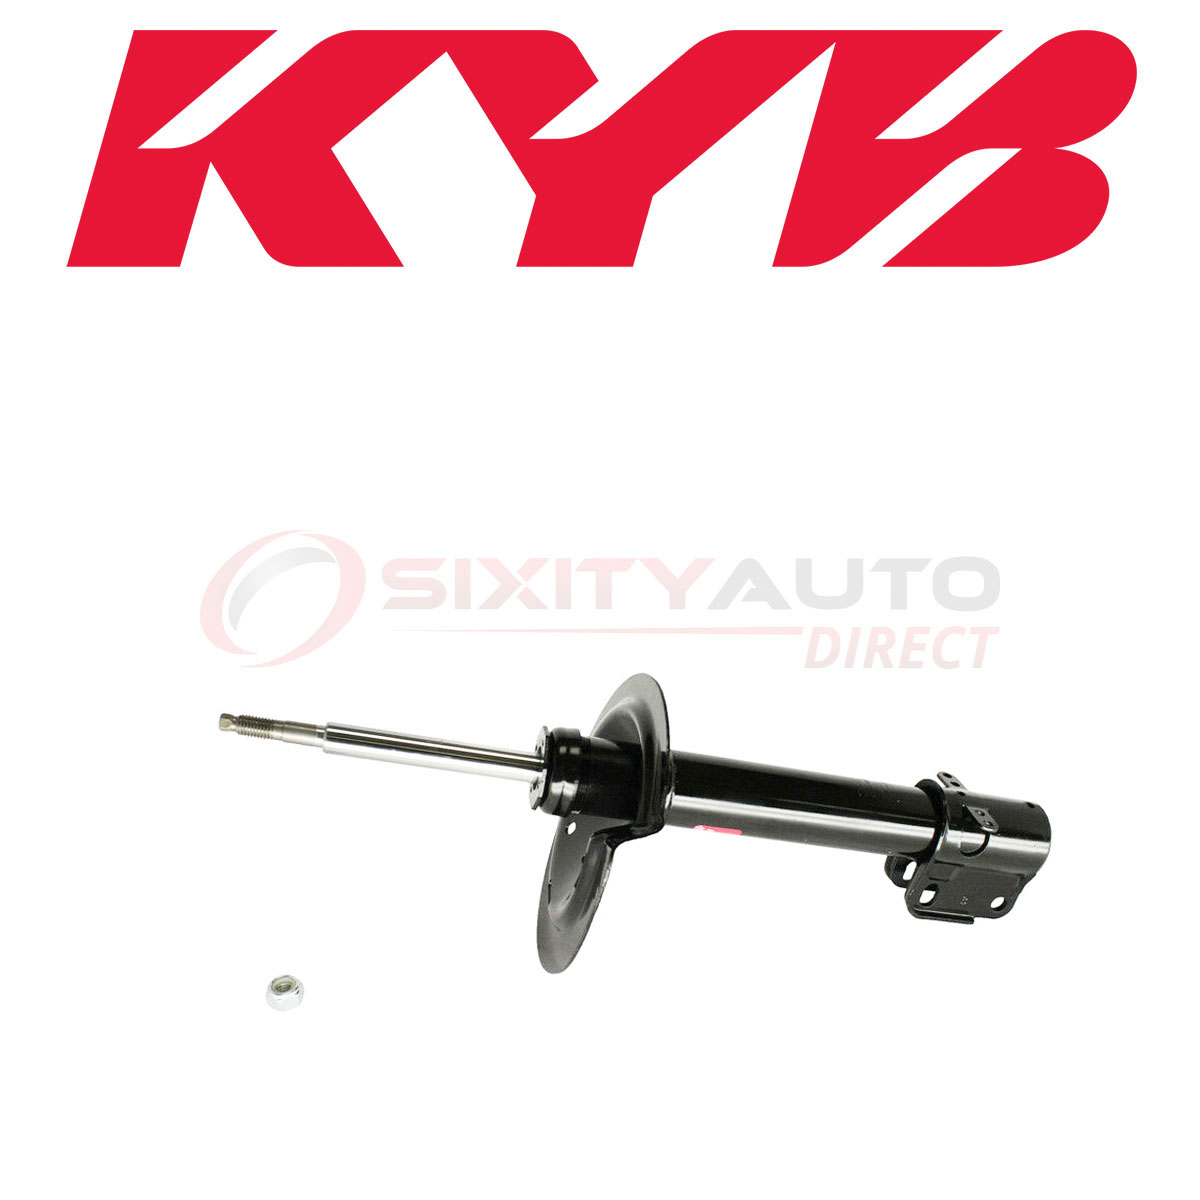 Dodge Neon 1995 1996 1997 1998 1999 KYB Front and Rear 4 Struts /& Shocks Kit